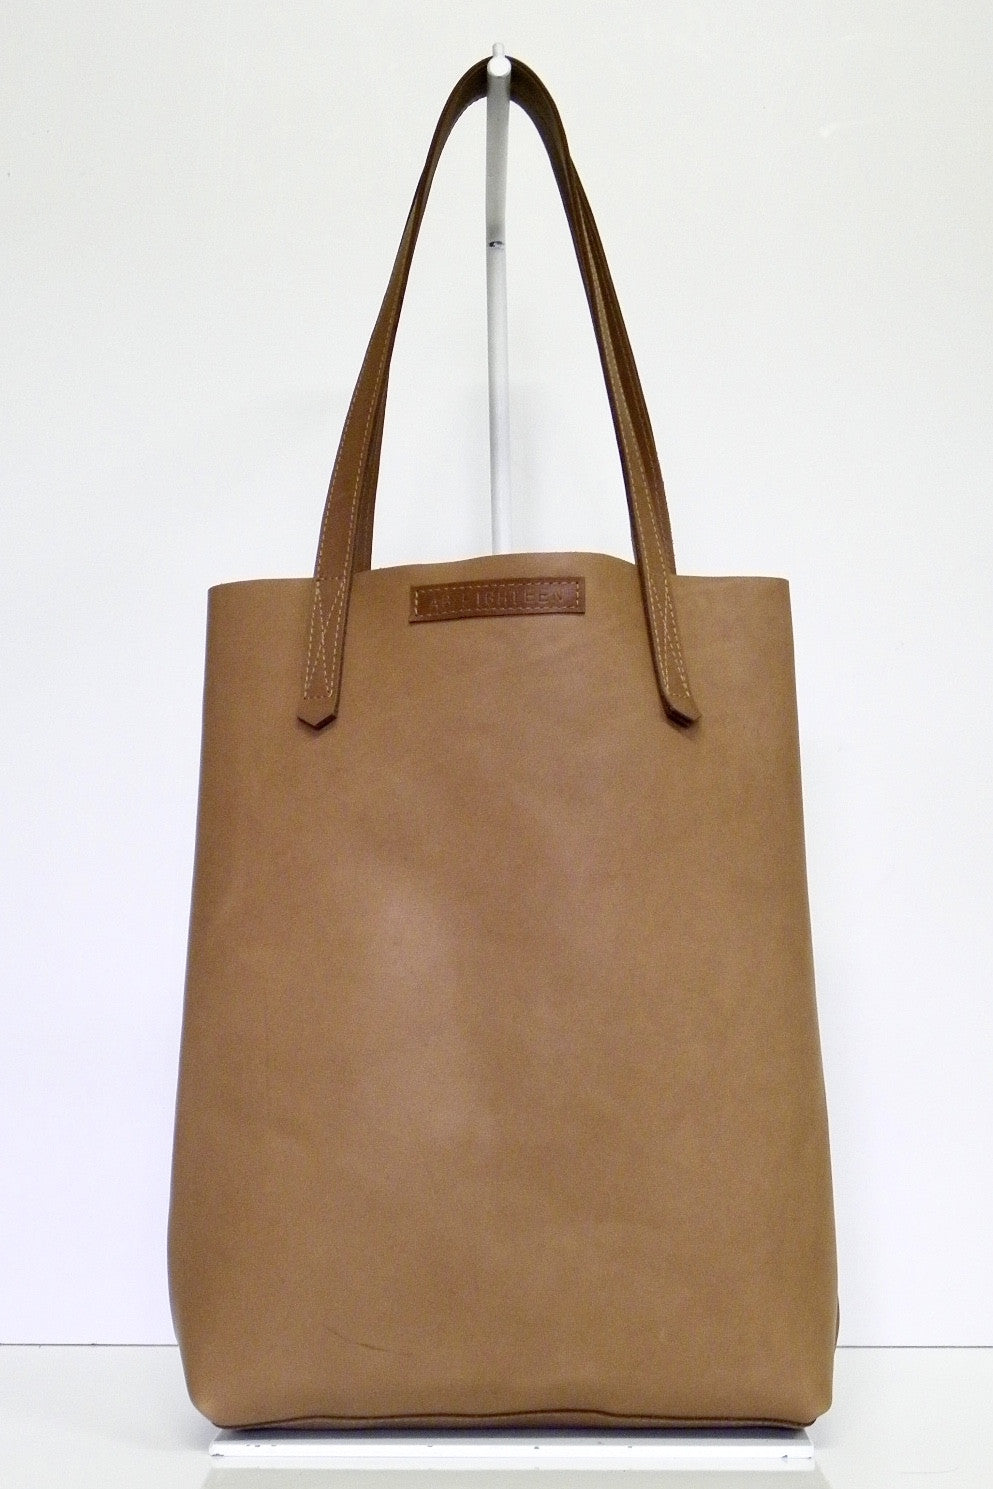 #18 Tote Bag / Whiskey